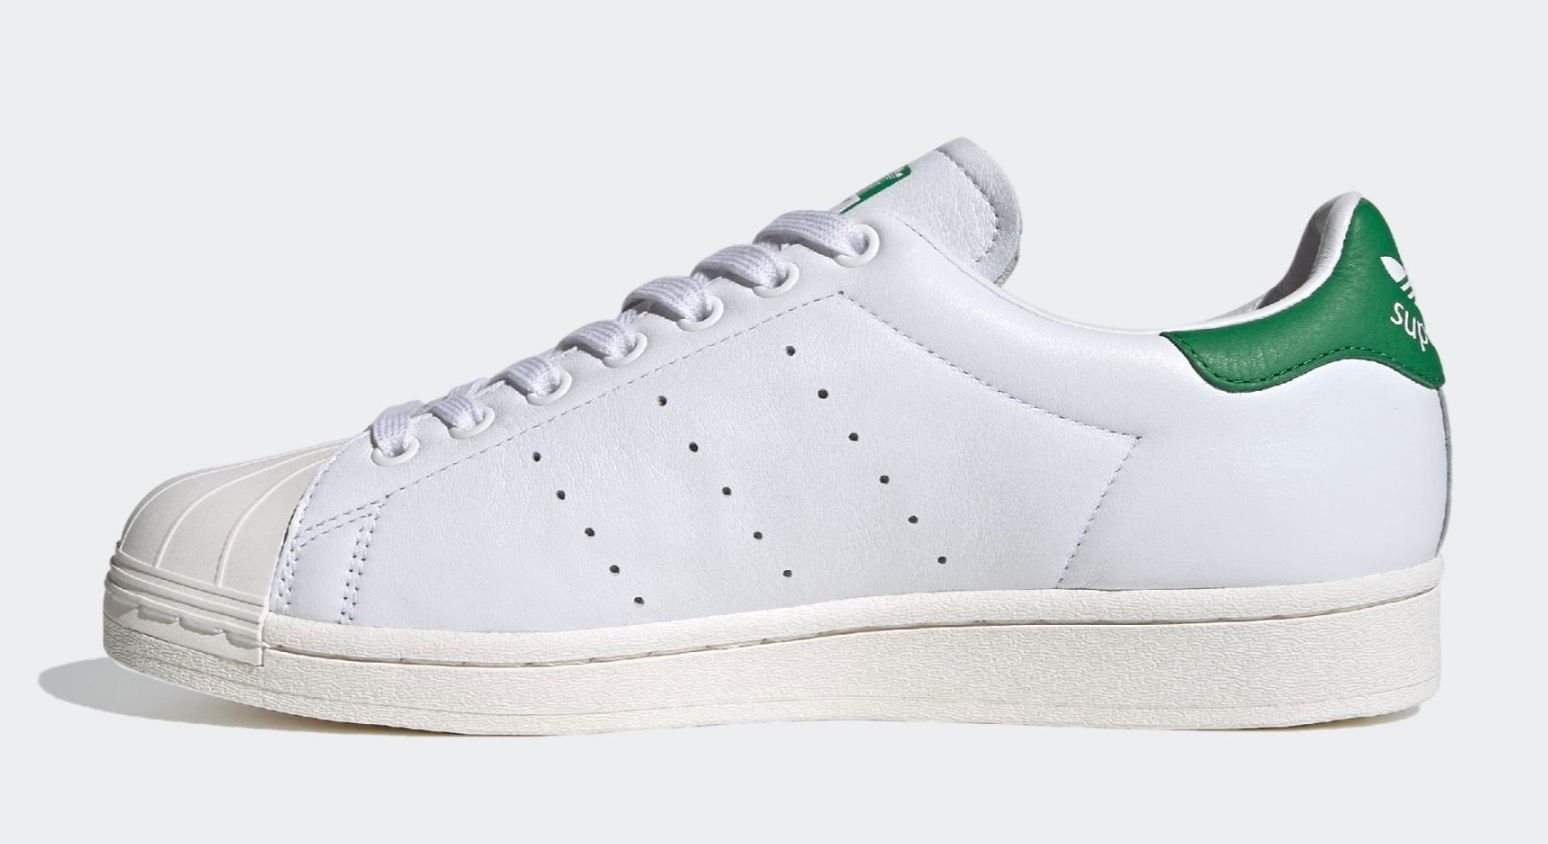 Introducing The Superstan, adidas' New, Contemporary Hyrbid Silhouette